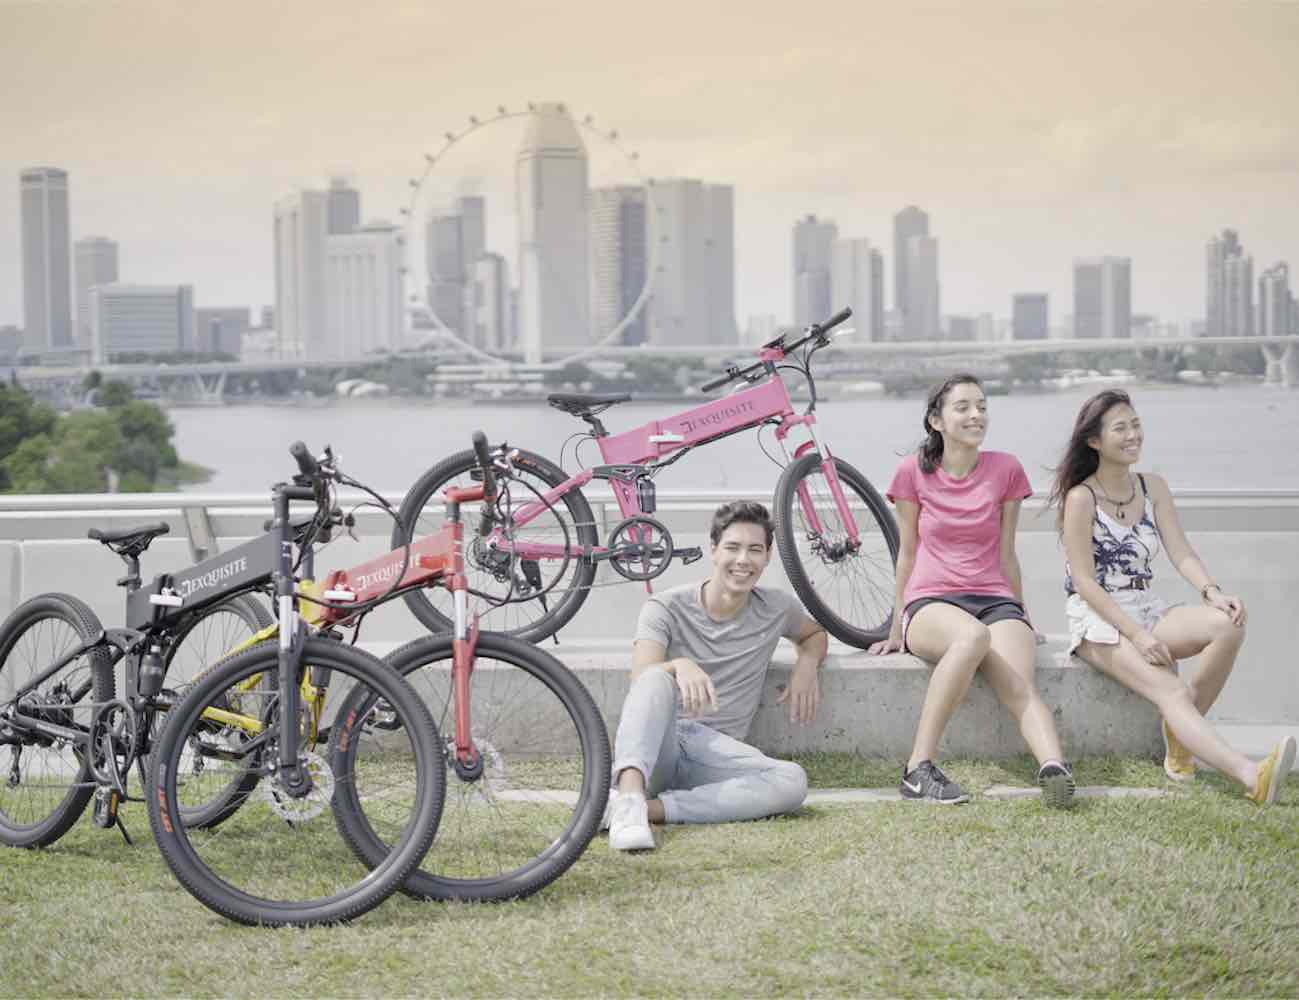 Dexquisite Self-Charging E-Bike fuels up while you pedal